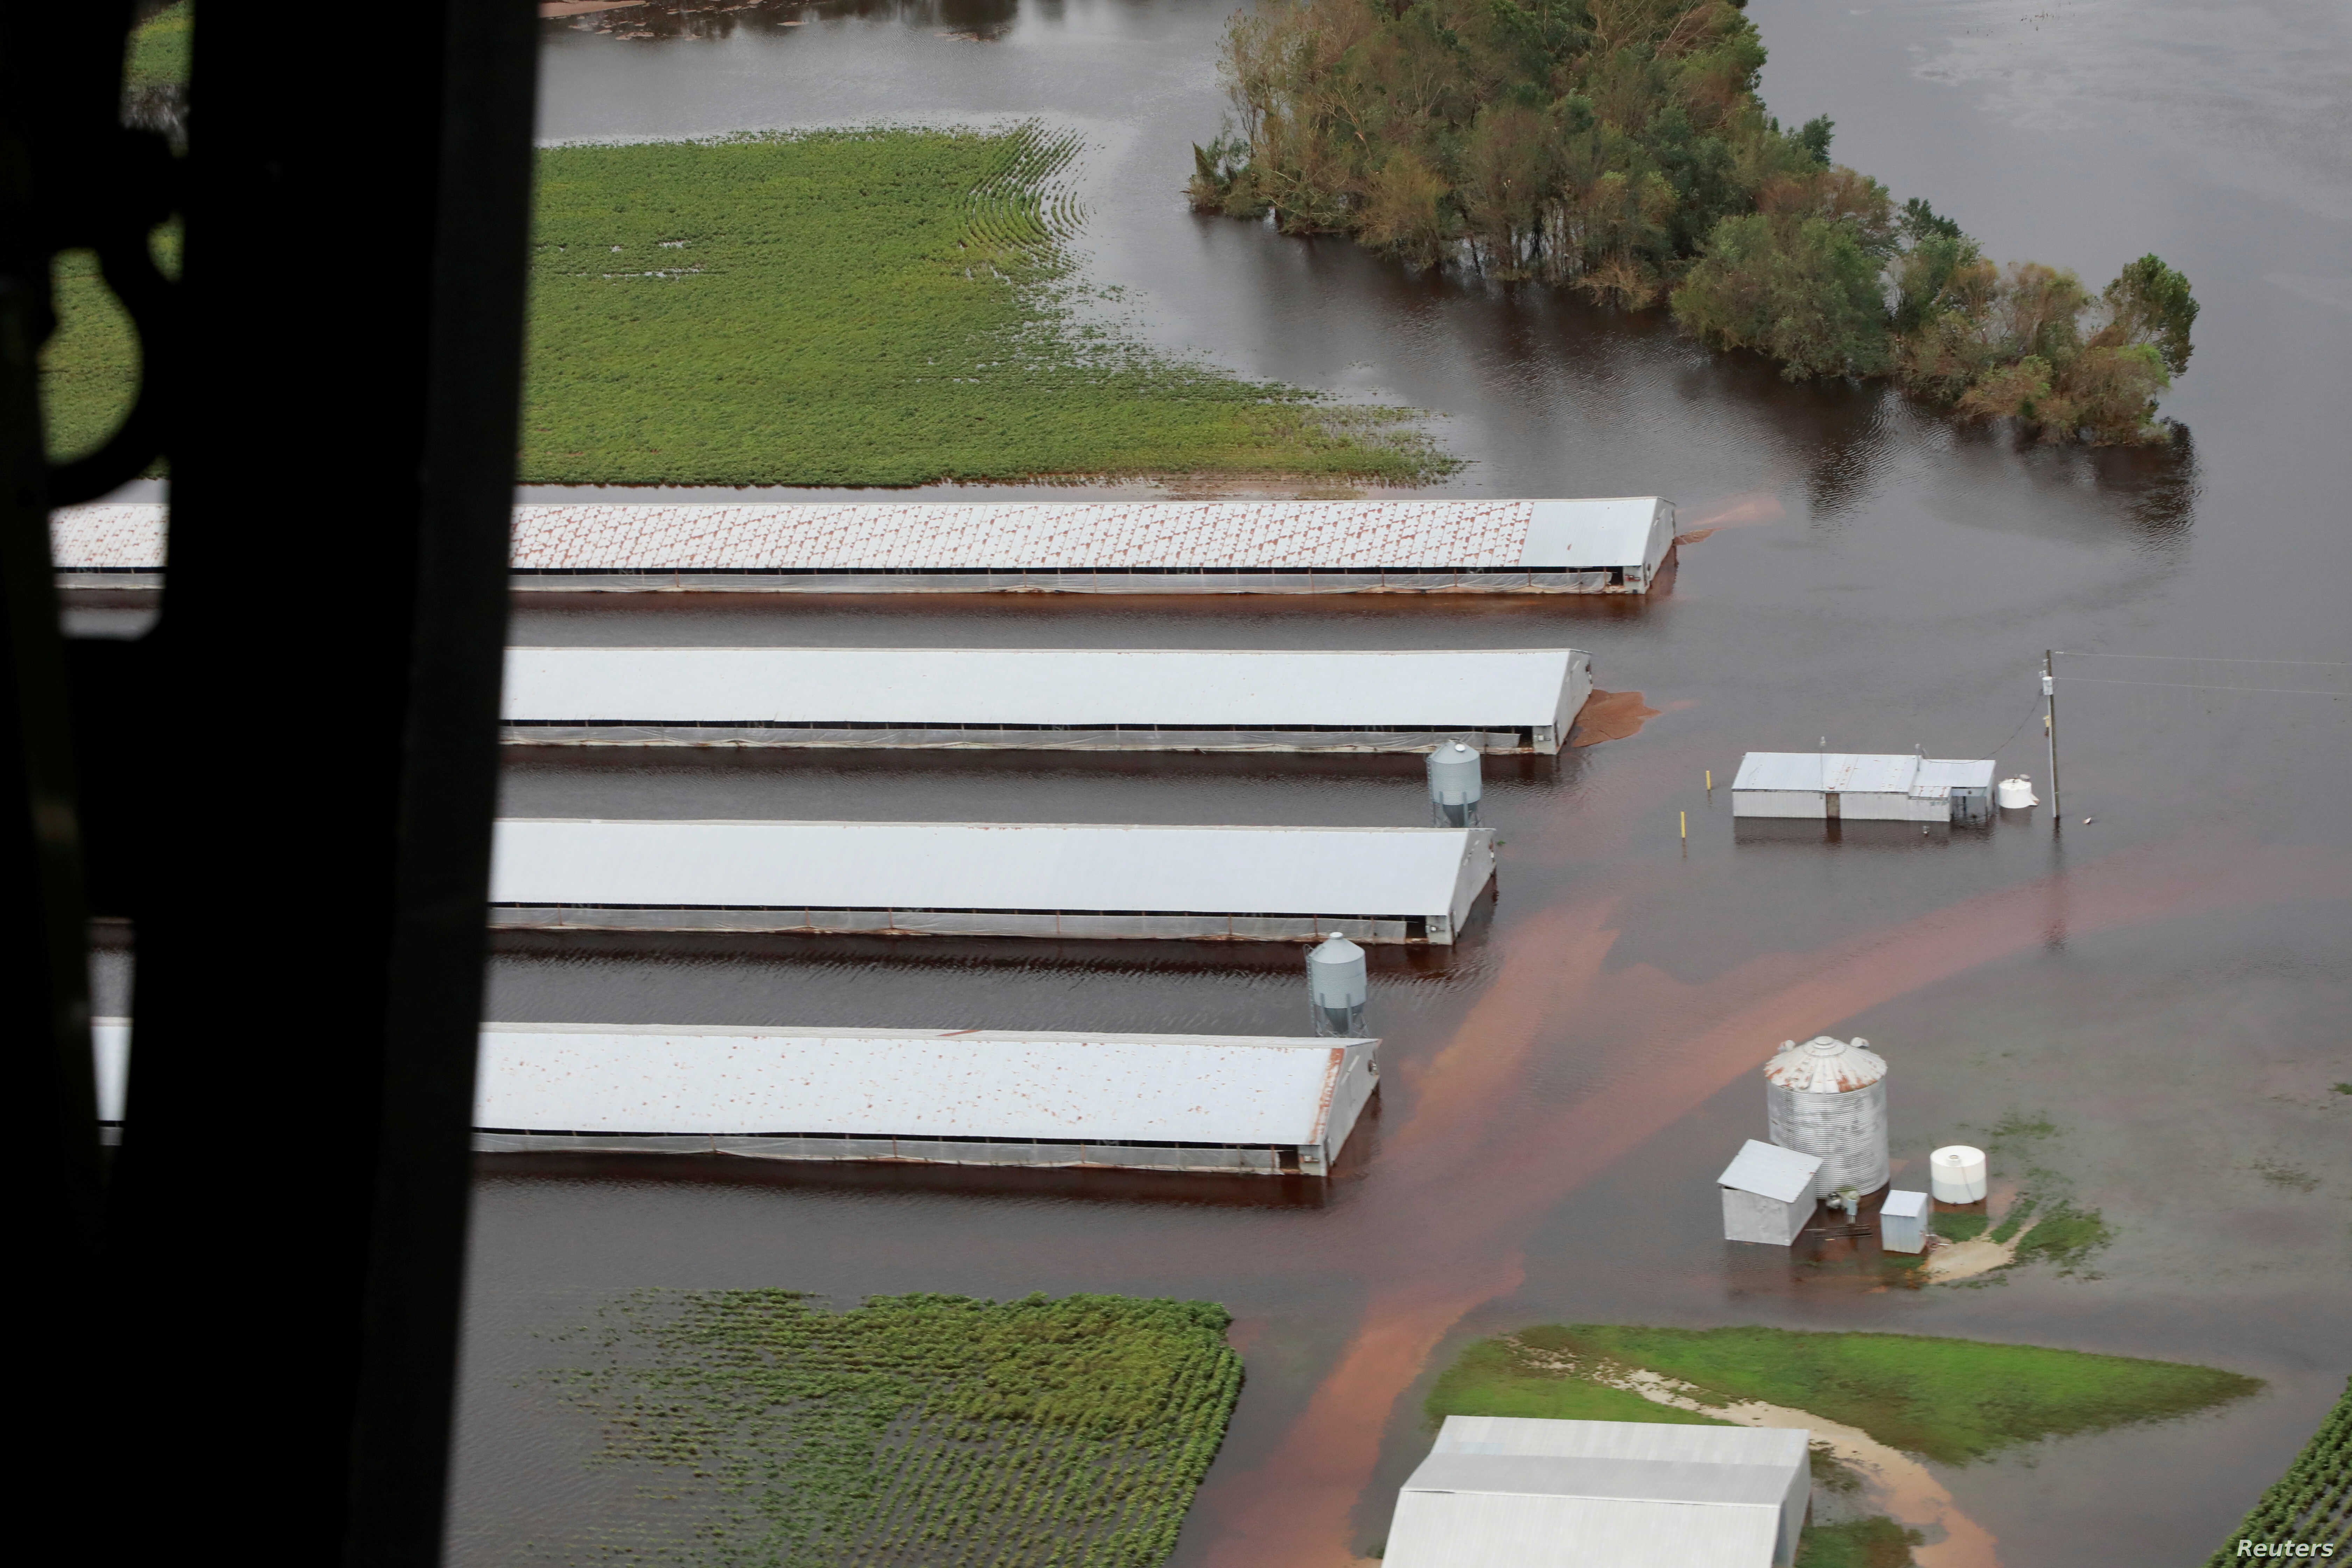 FILE - A flooded farm is seen during a flight by a U.S. Customs and Border Protection helicopter after the passing of Hurricane Florence, now downgraded to a tropical depression, over central North Carolina, Sept. 16, 2018.